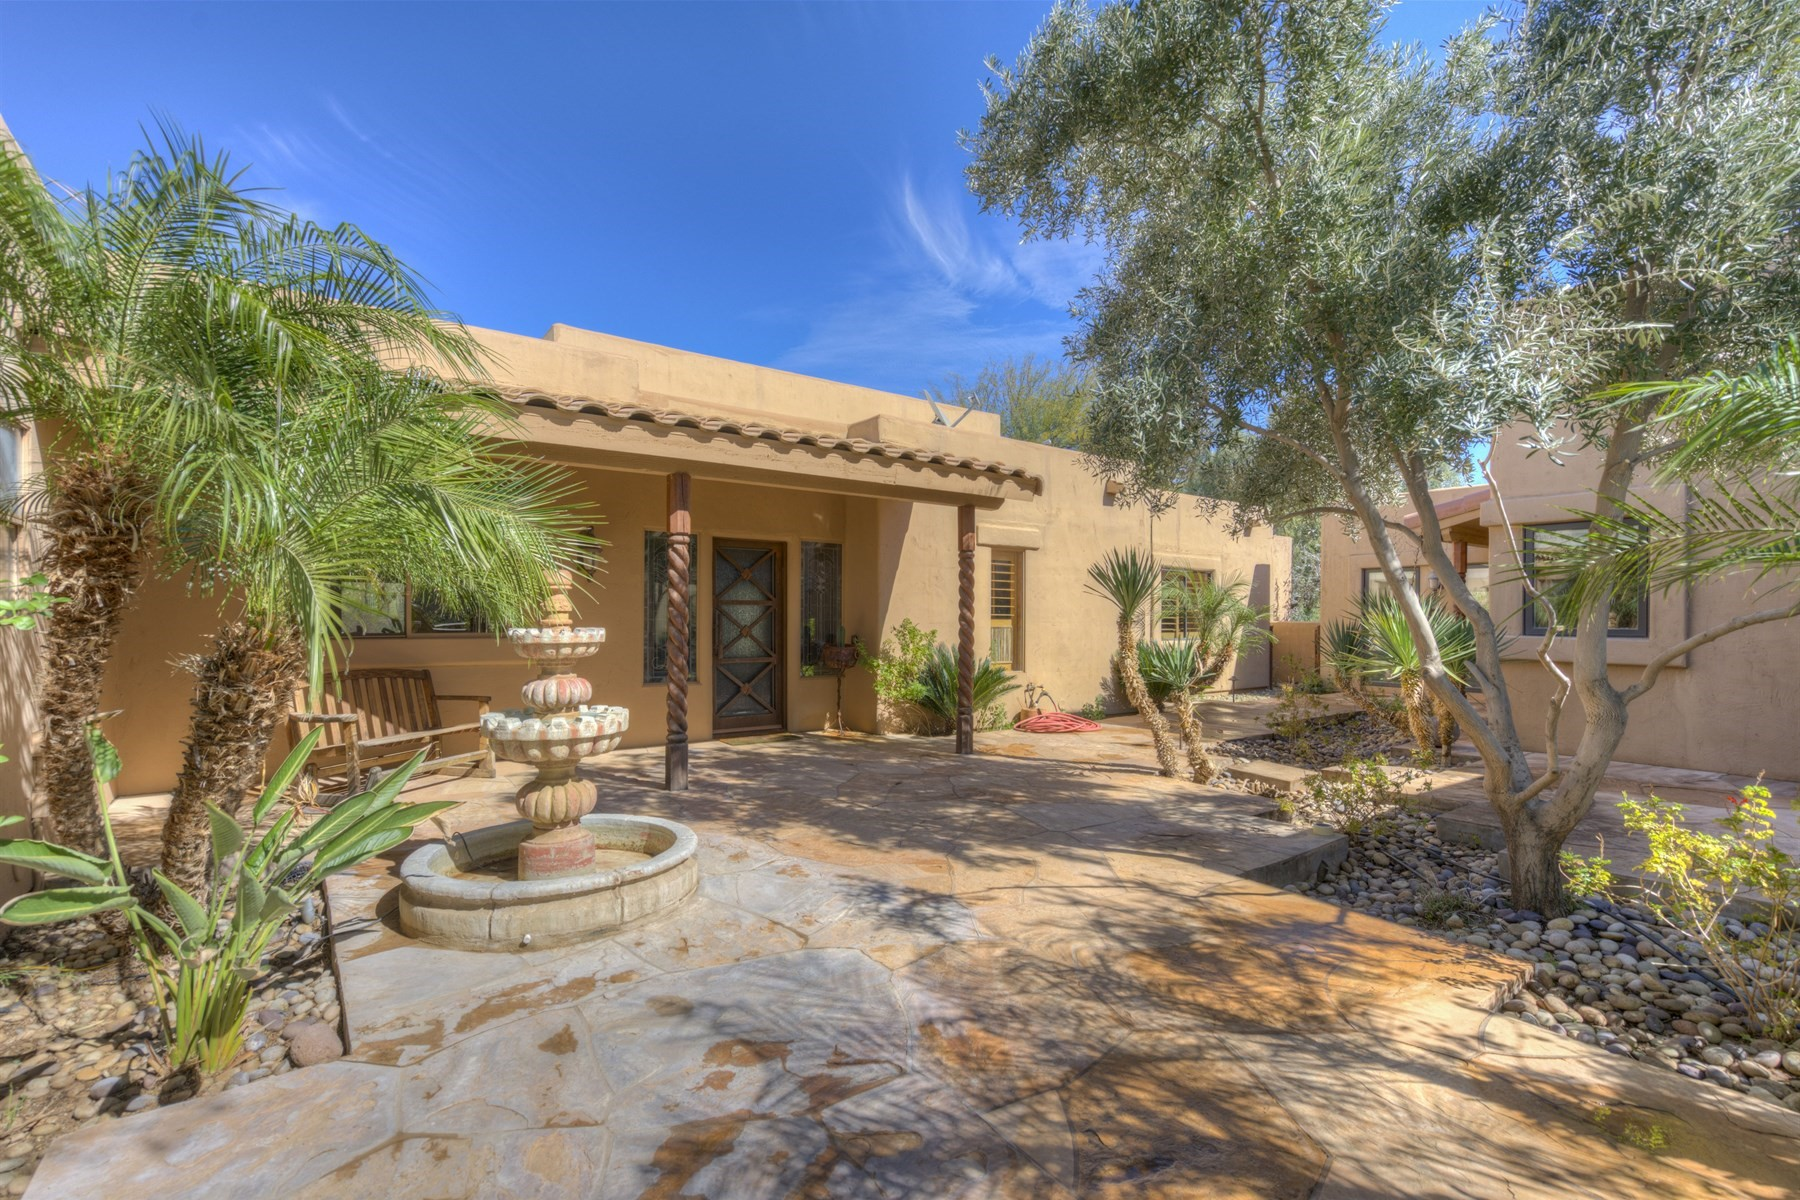 Villa per Vendita alle ore Custom Sonoran Ranch Home 5101 E CLOUD RD Cave Creek, Arizona, 85331 Stati Uniti